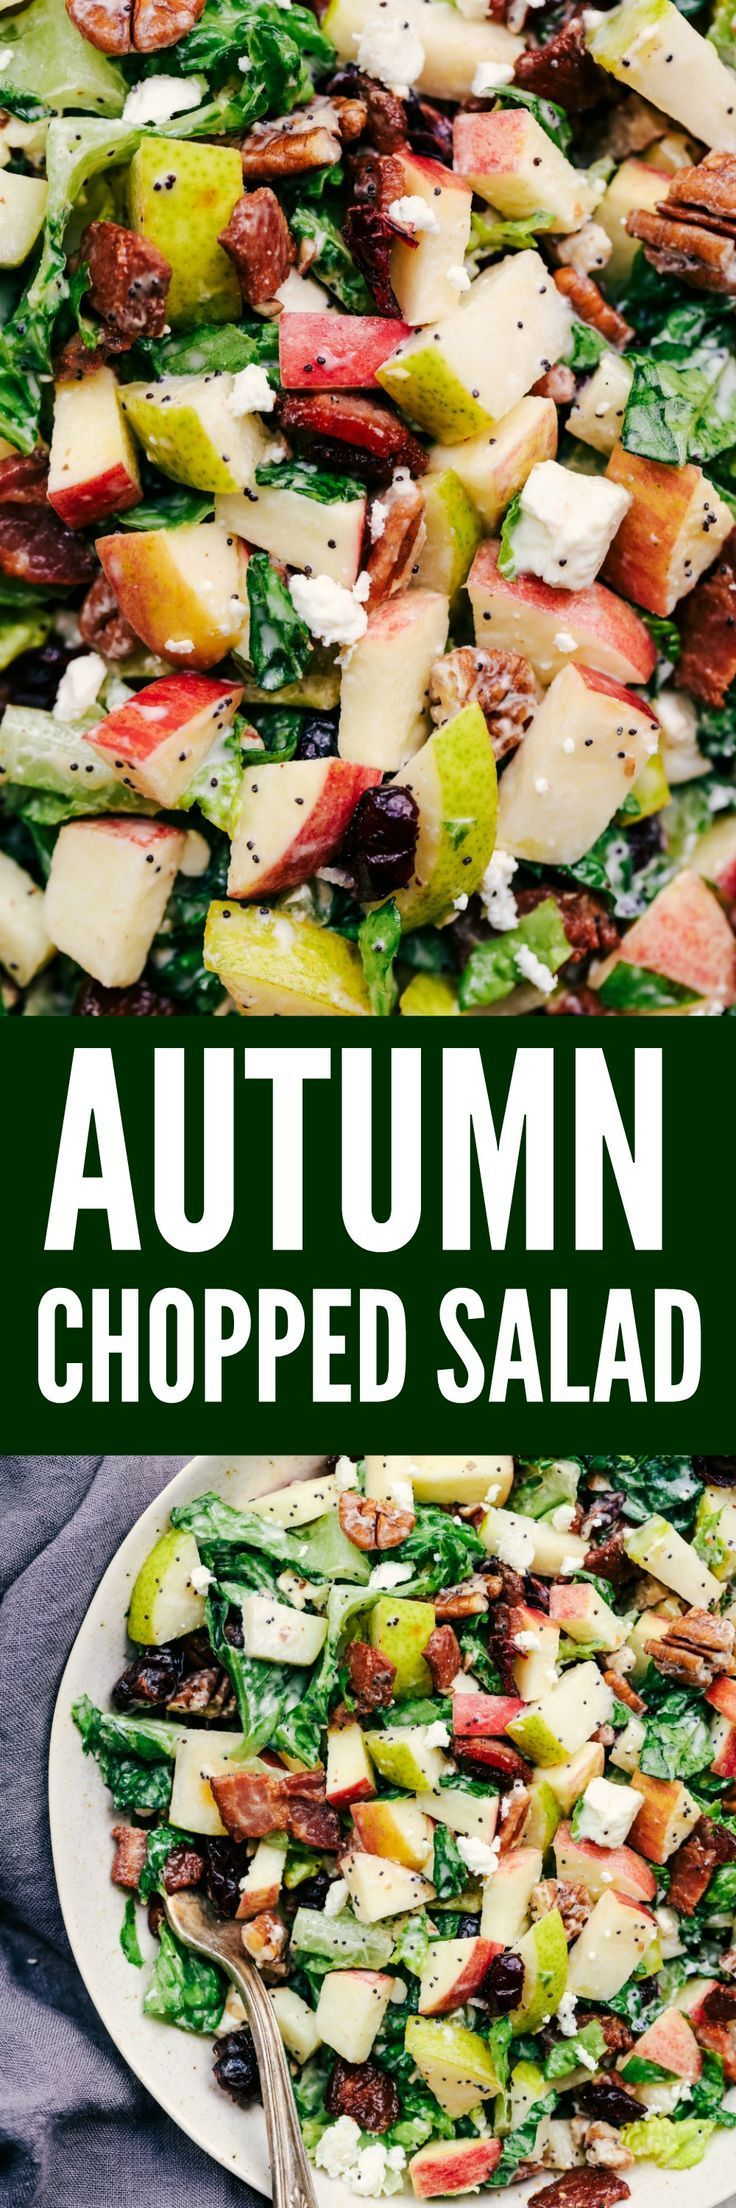 Autumn Chopped Salad with Creamy Poppyseed Dressing is all of your fall salad dreams come true! Crisp chopped apples, pears, romaine lettuce, crunchy pecans, bacon, cranberries and feta cheese combine in a creamy dressing to bring you one unforgettable salad!